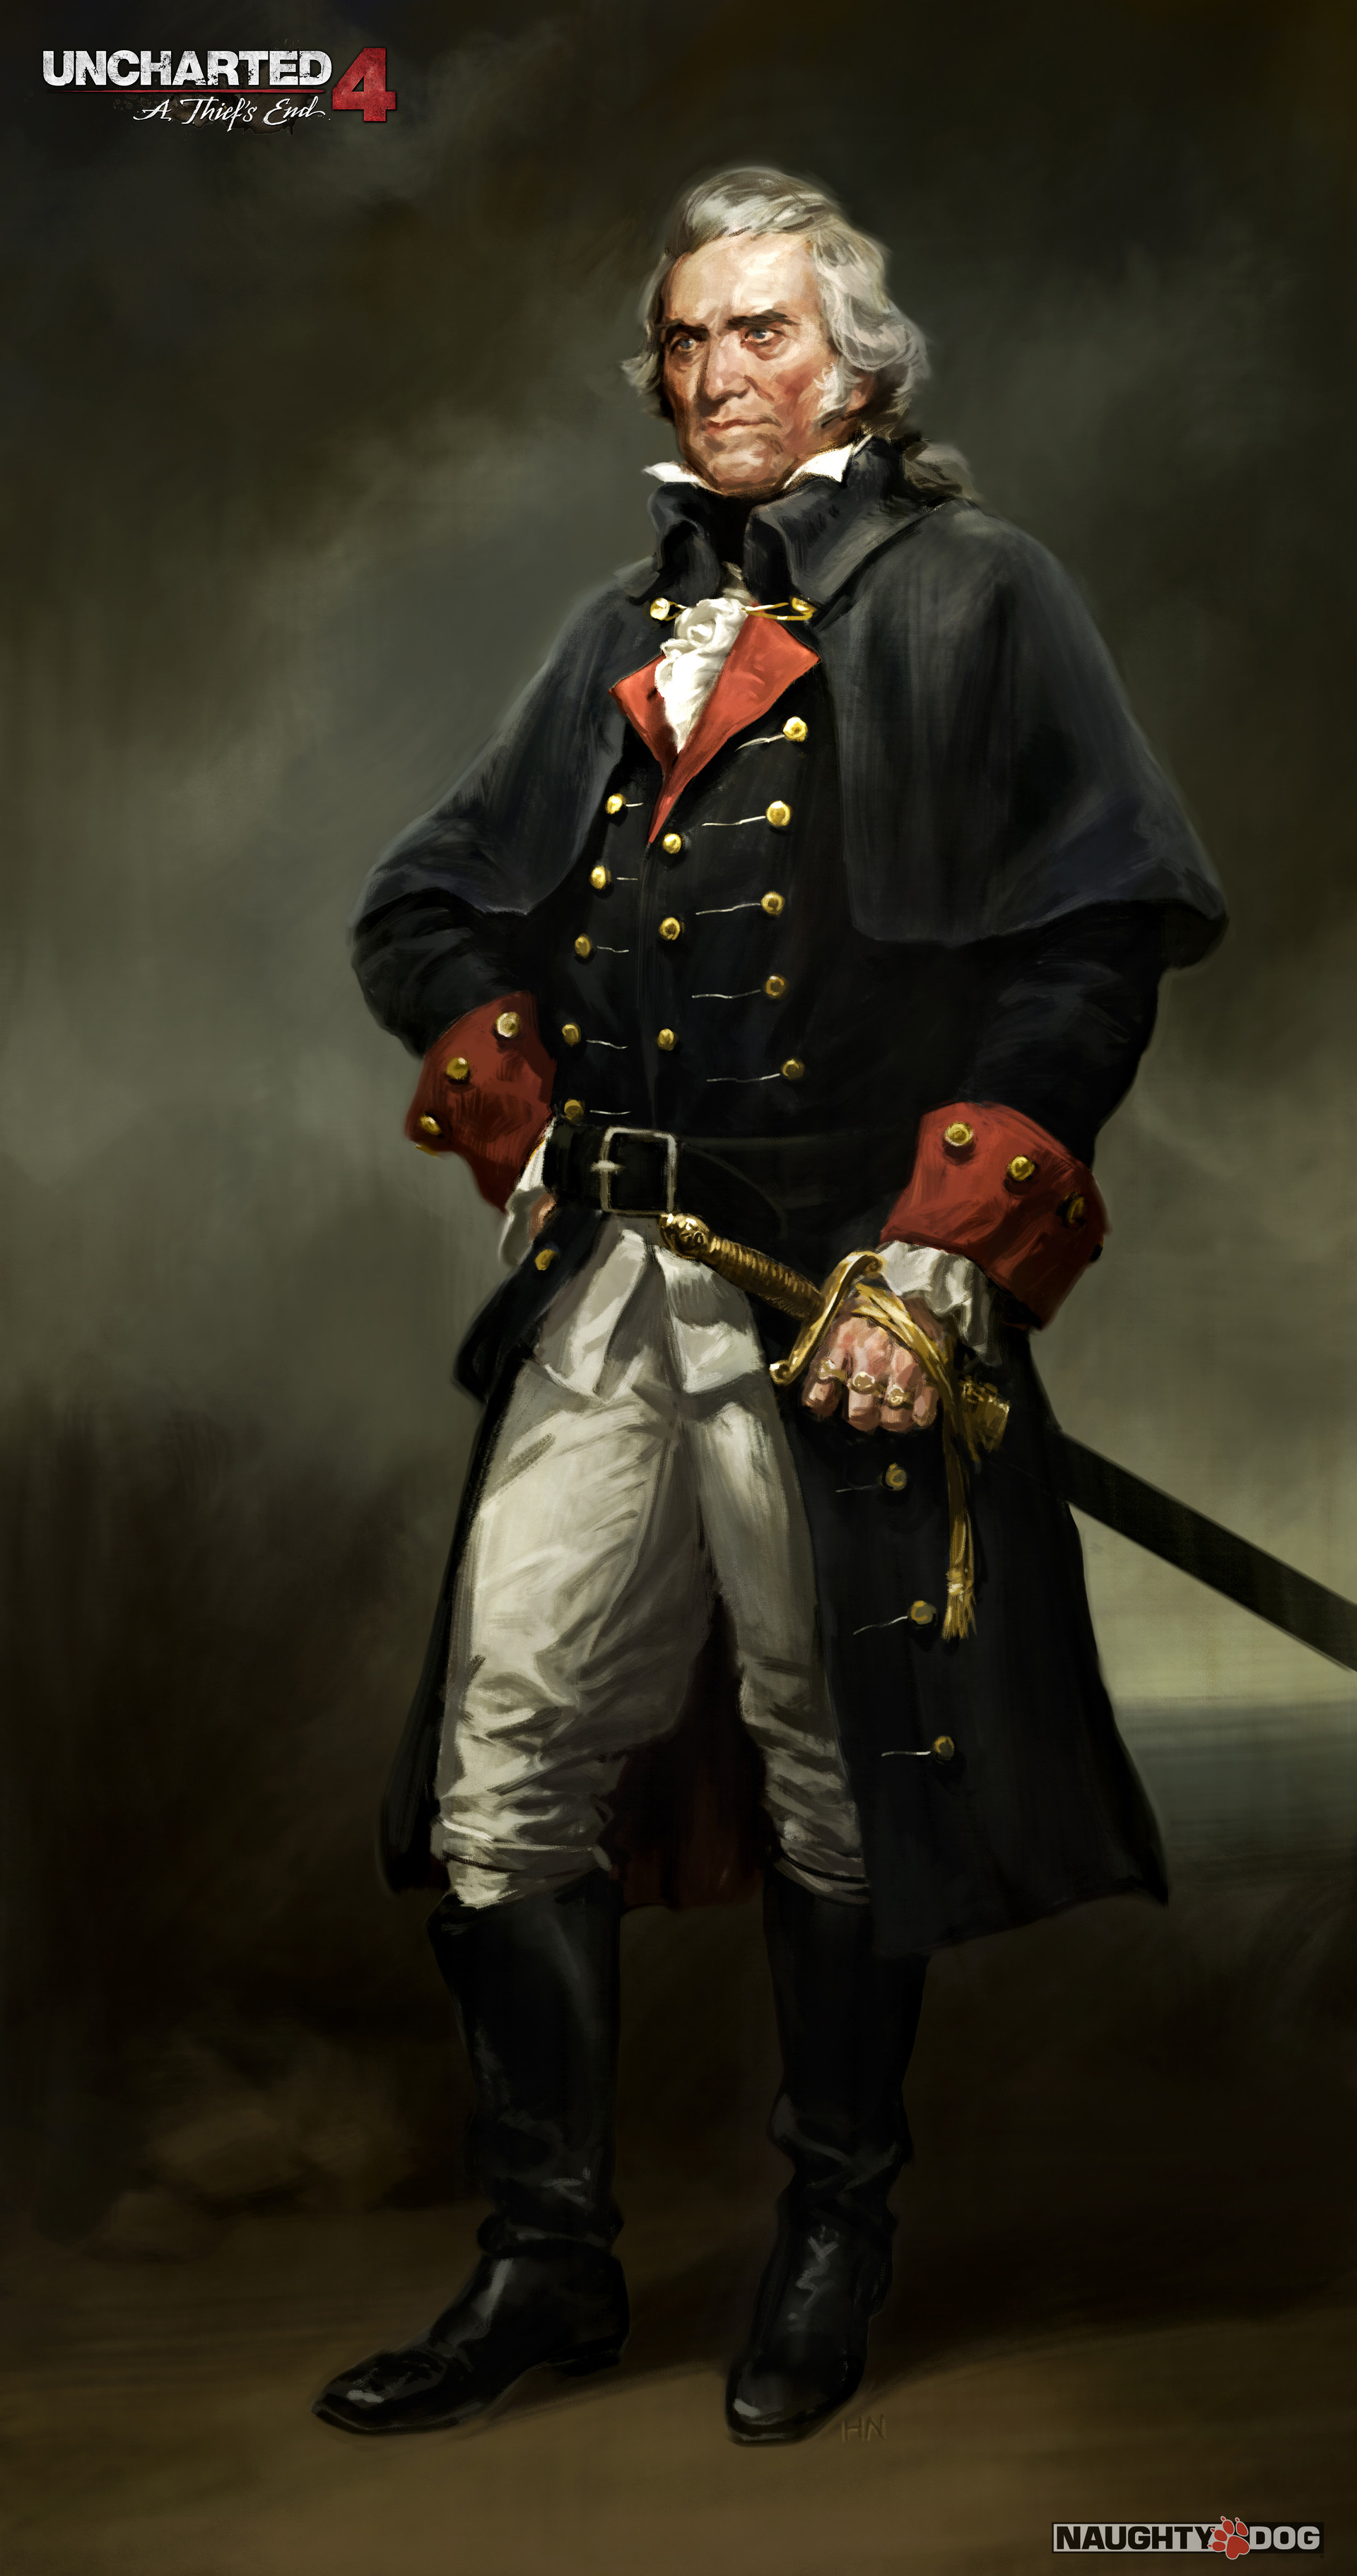 Hyoung nam pirate william mayes ill hn 01f